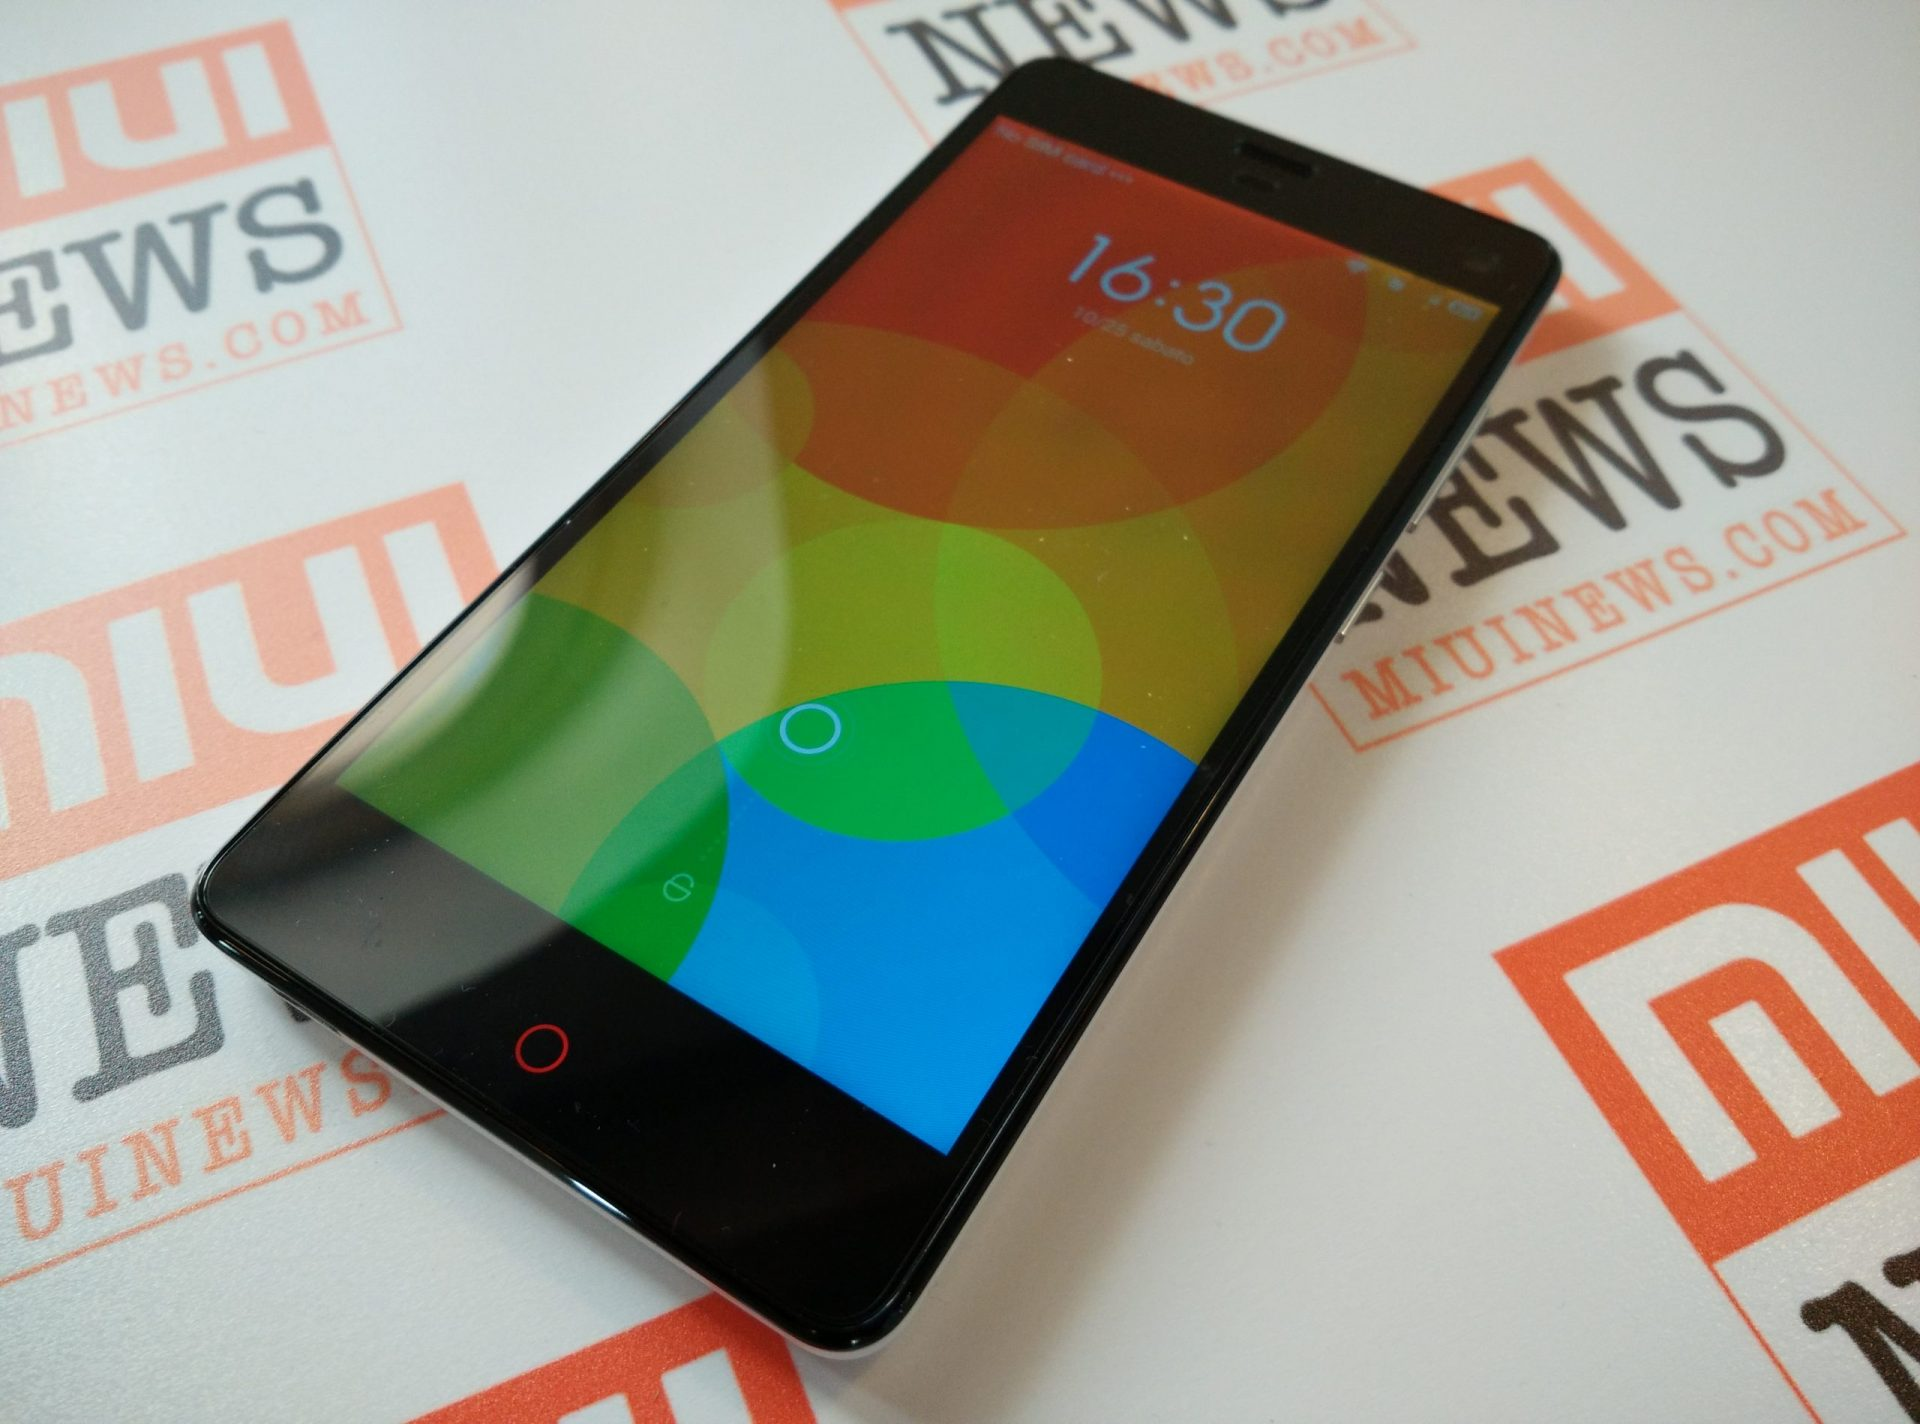 Xiaomi enhances the security of its users' data